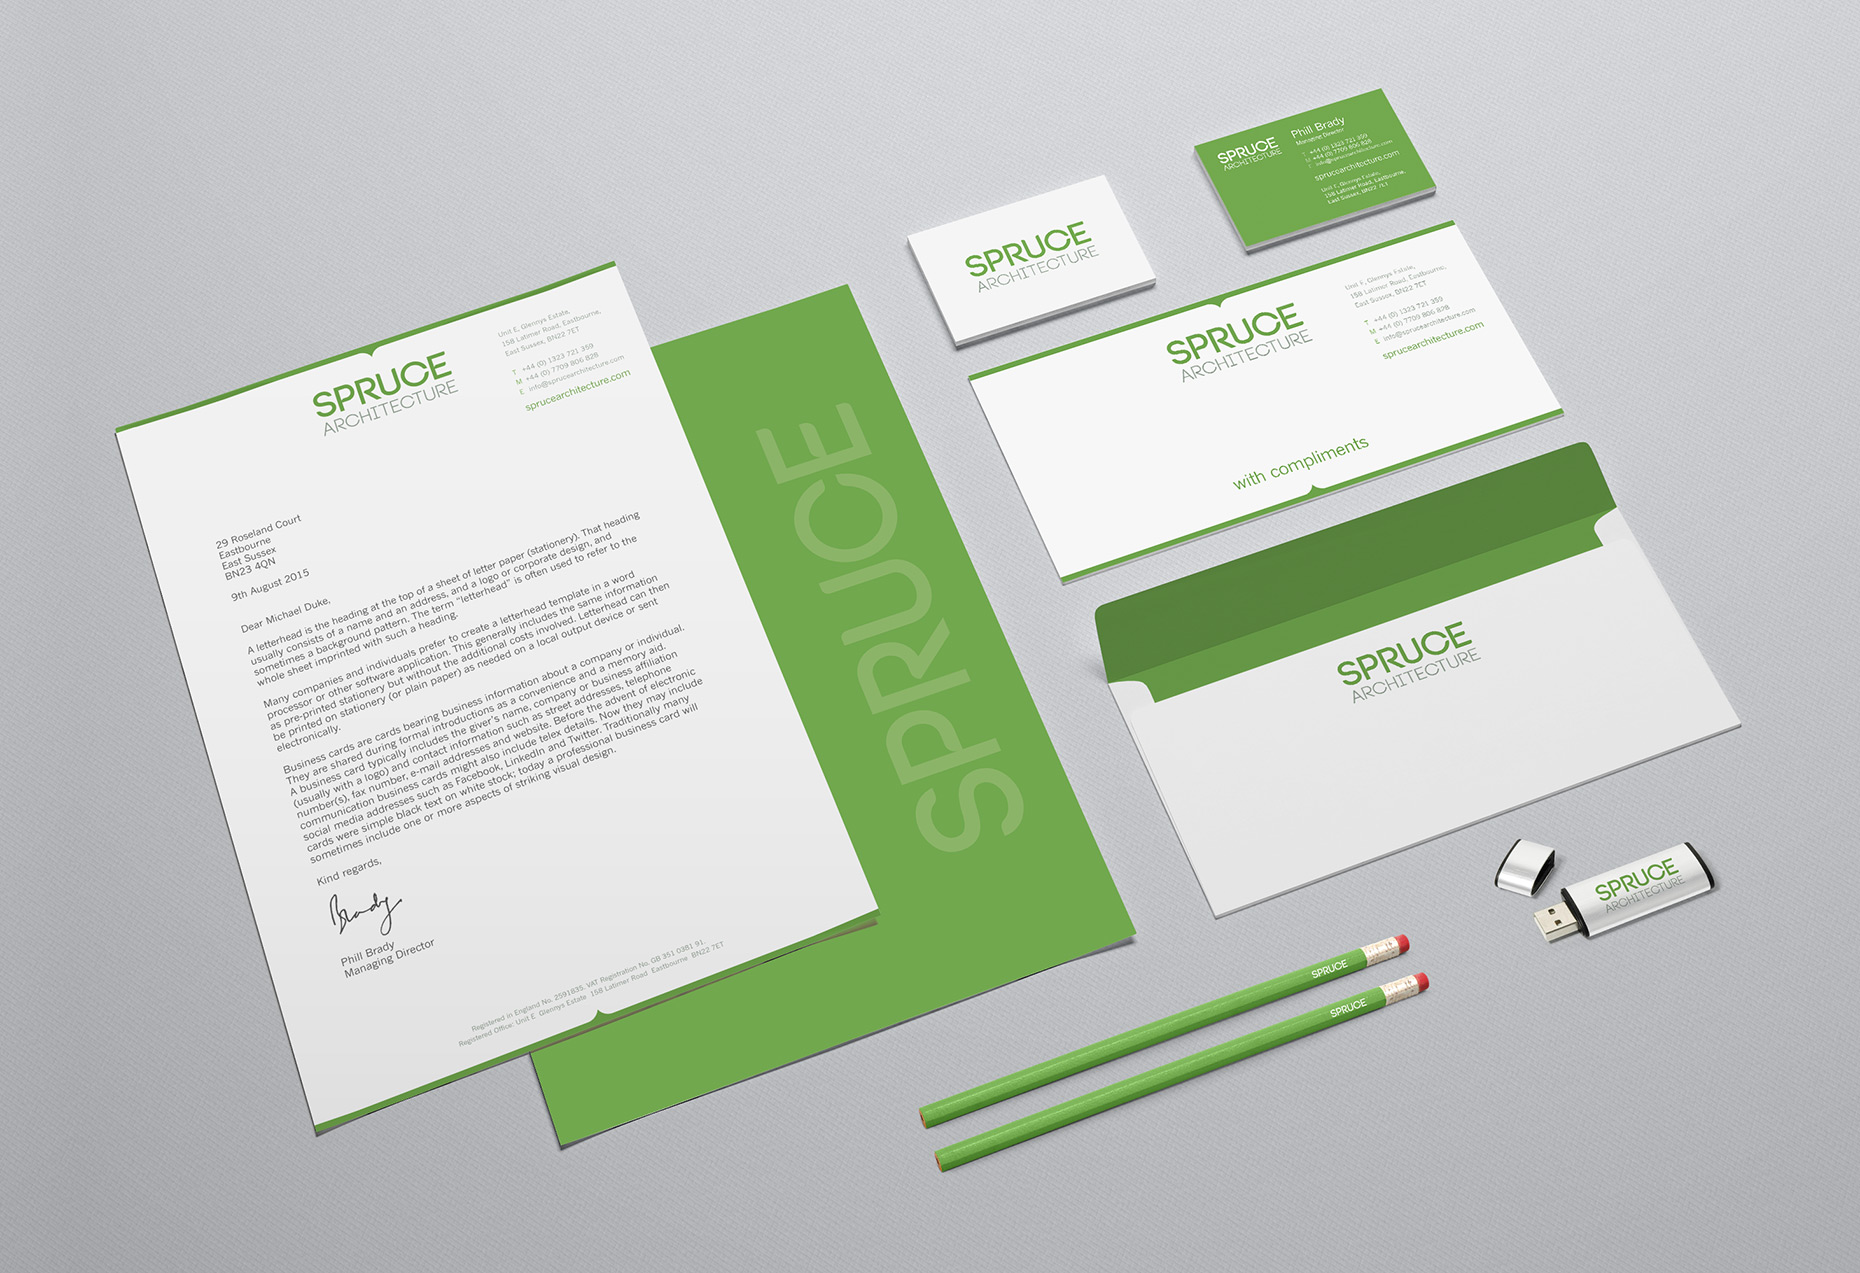 Spruce Architecture – Stationery